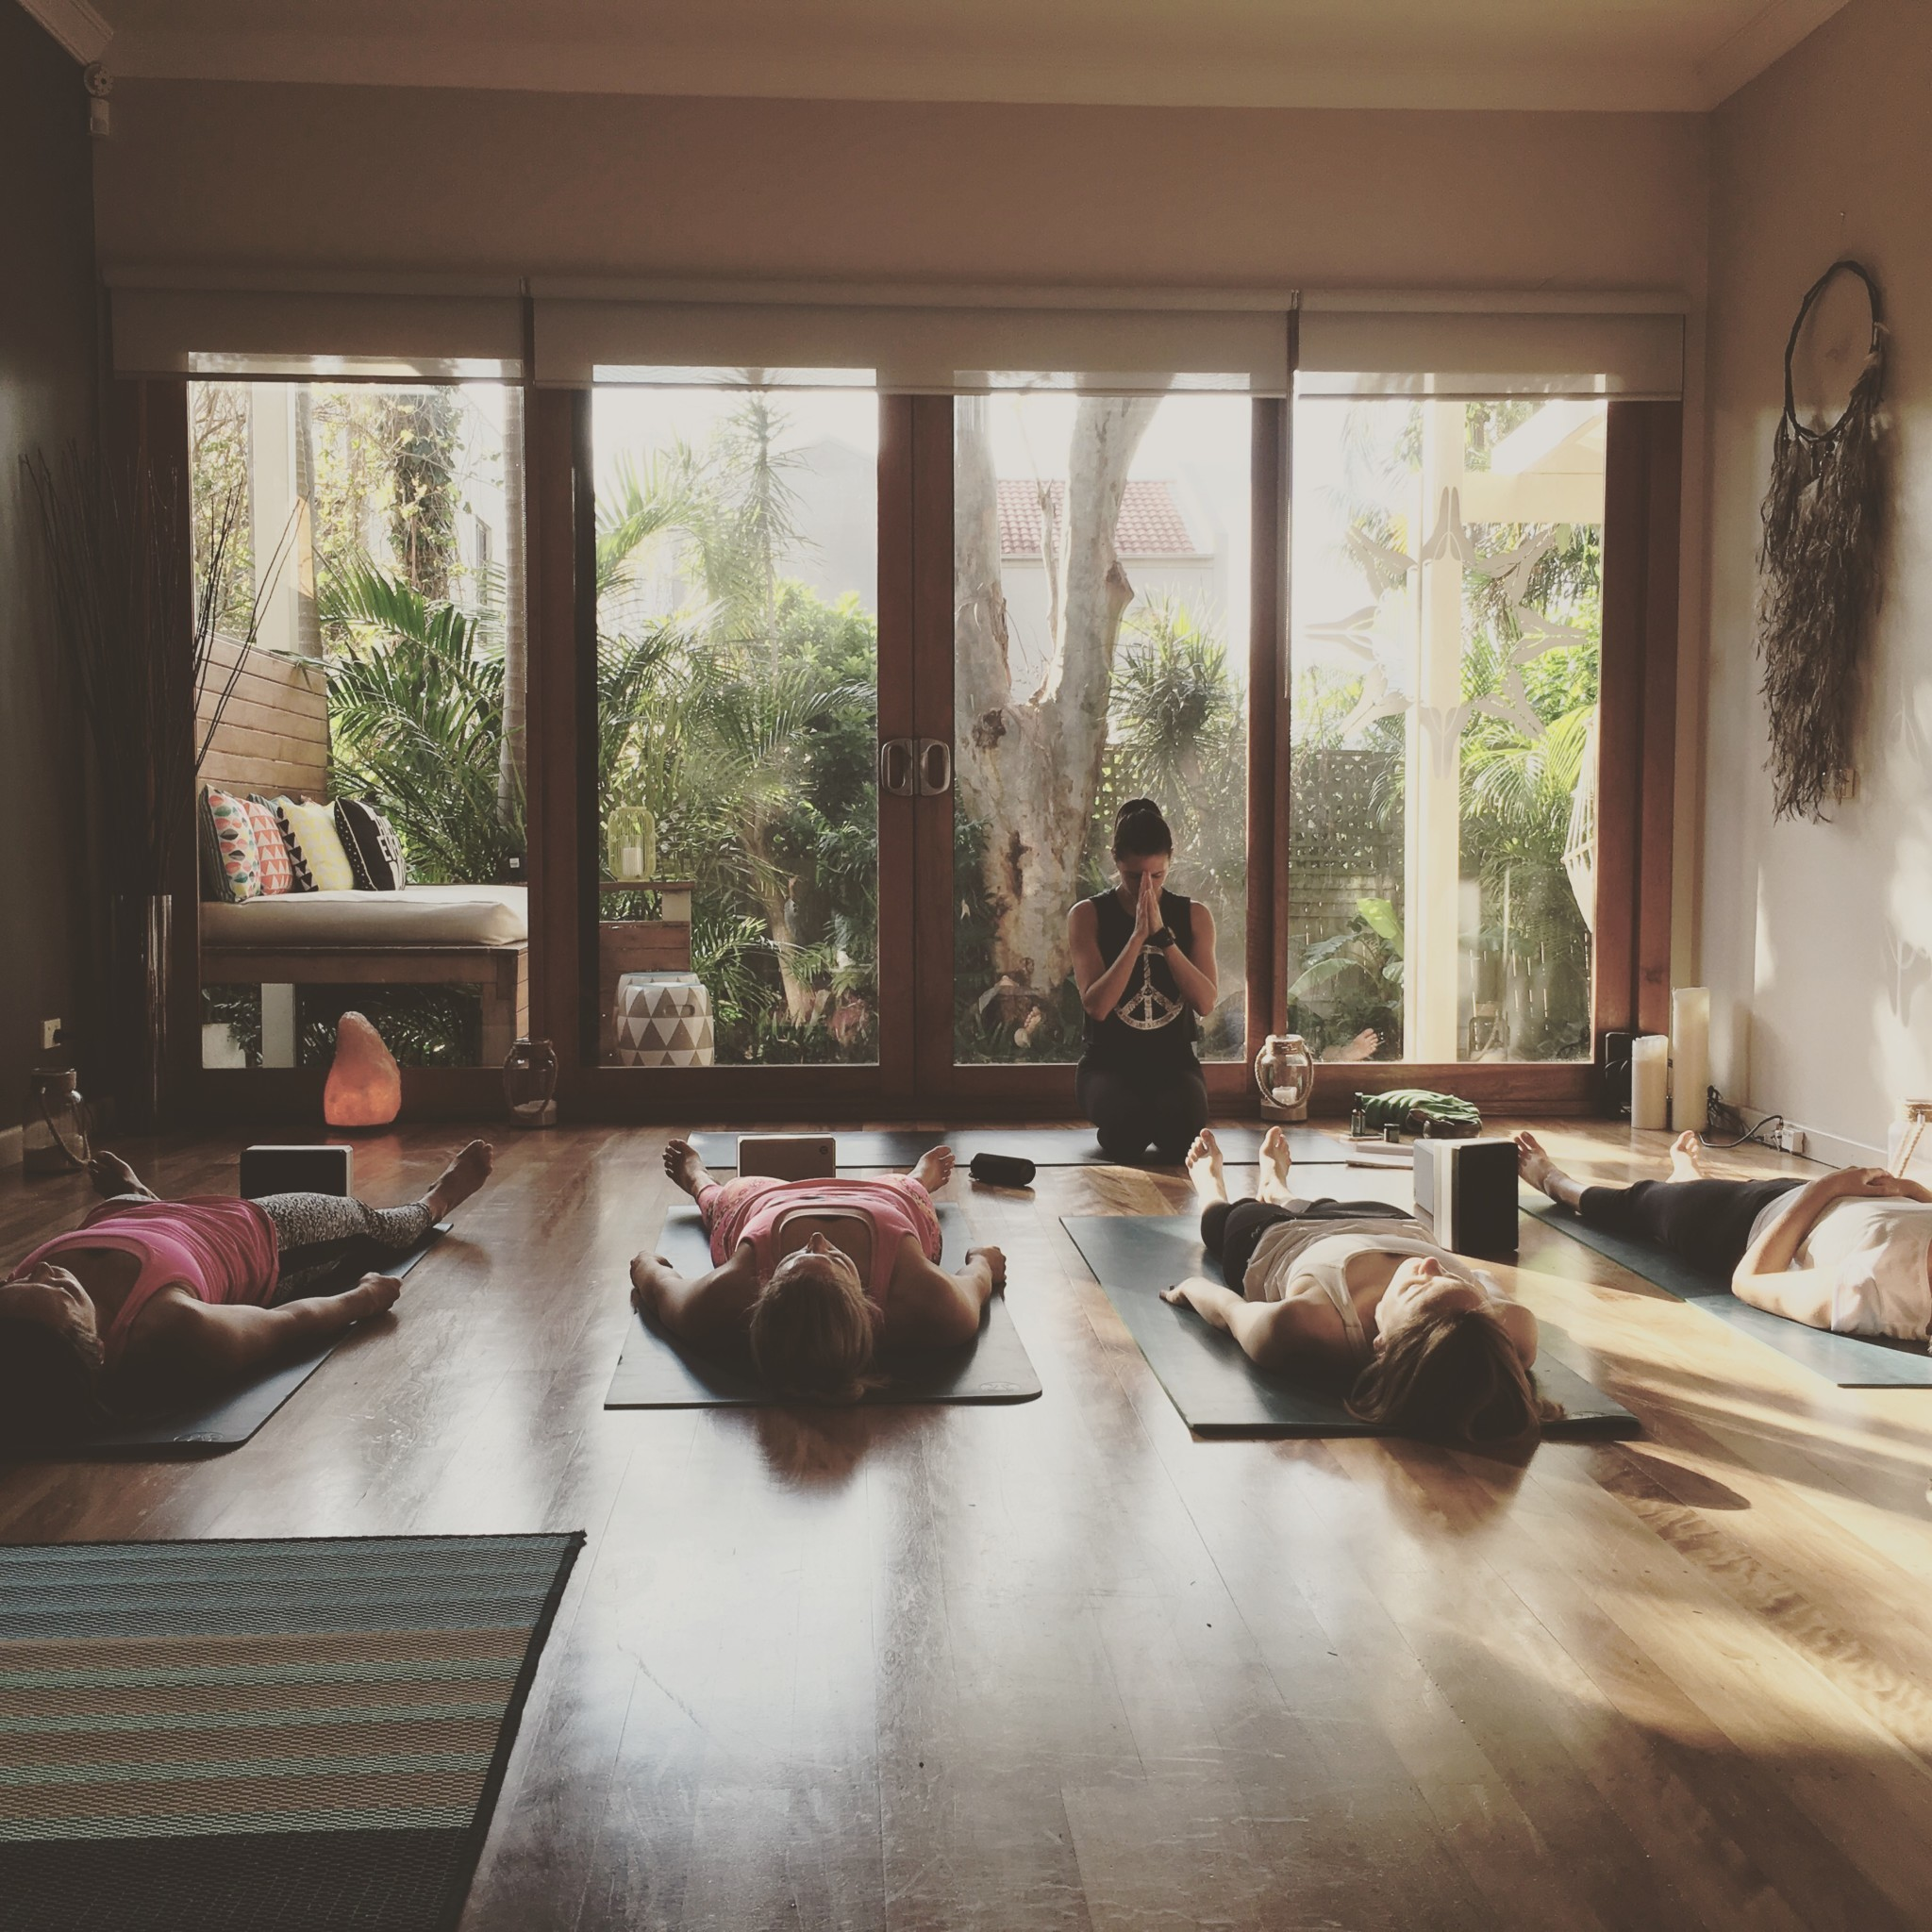 The Yoga Space is a place for connection and relaxation through yoga, meditation and mindfulness teachings. Image © Bondi Yoga House